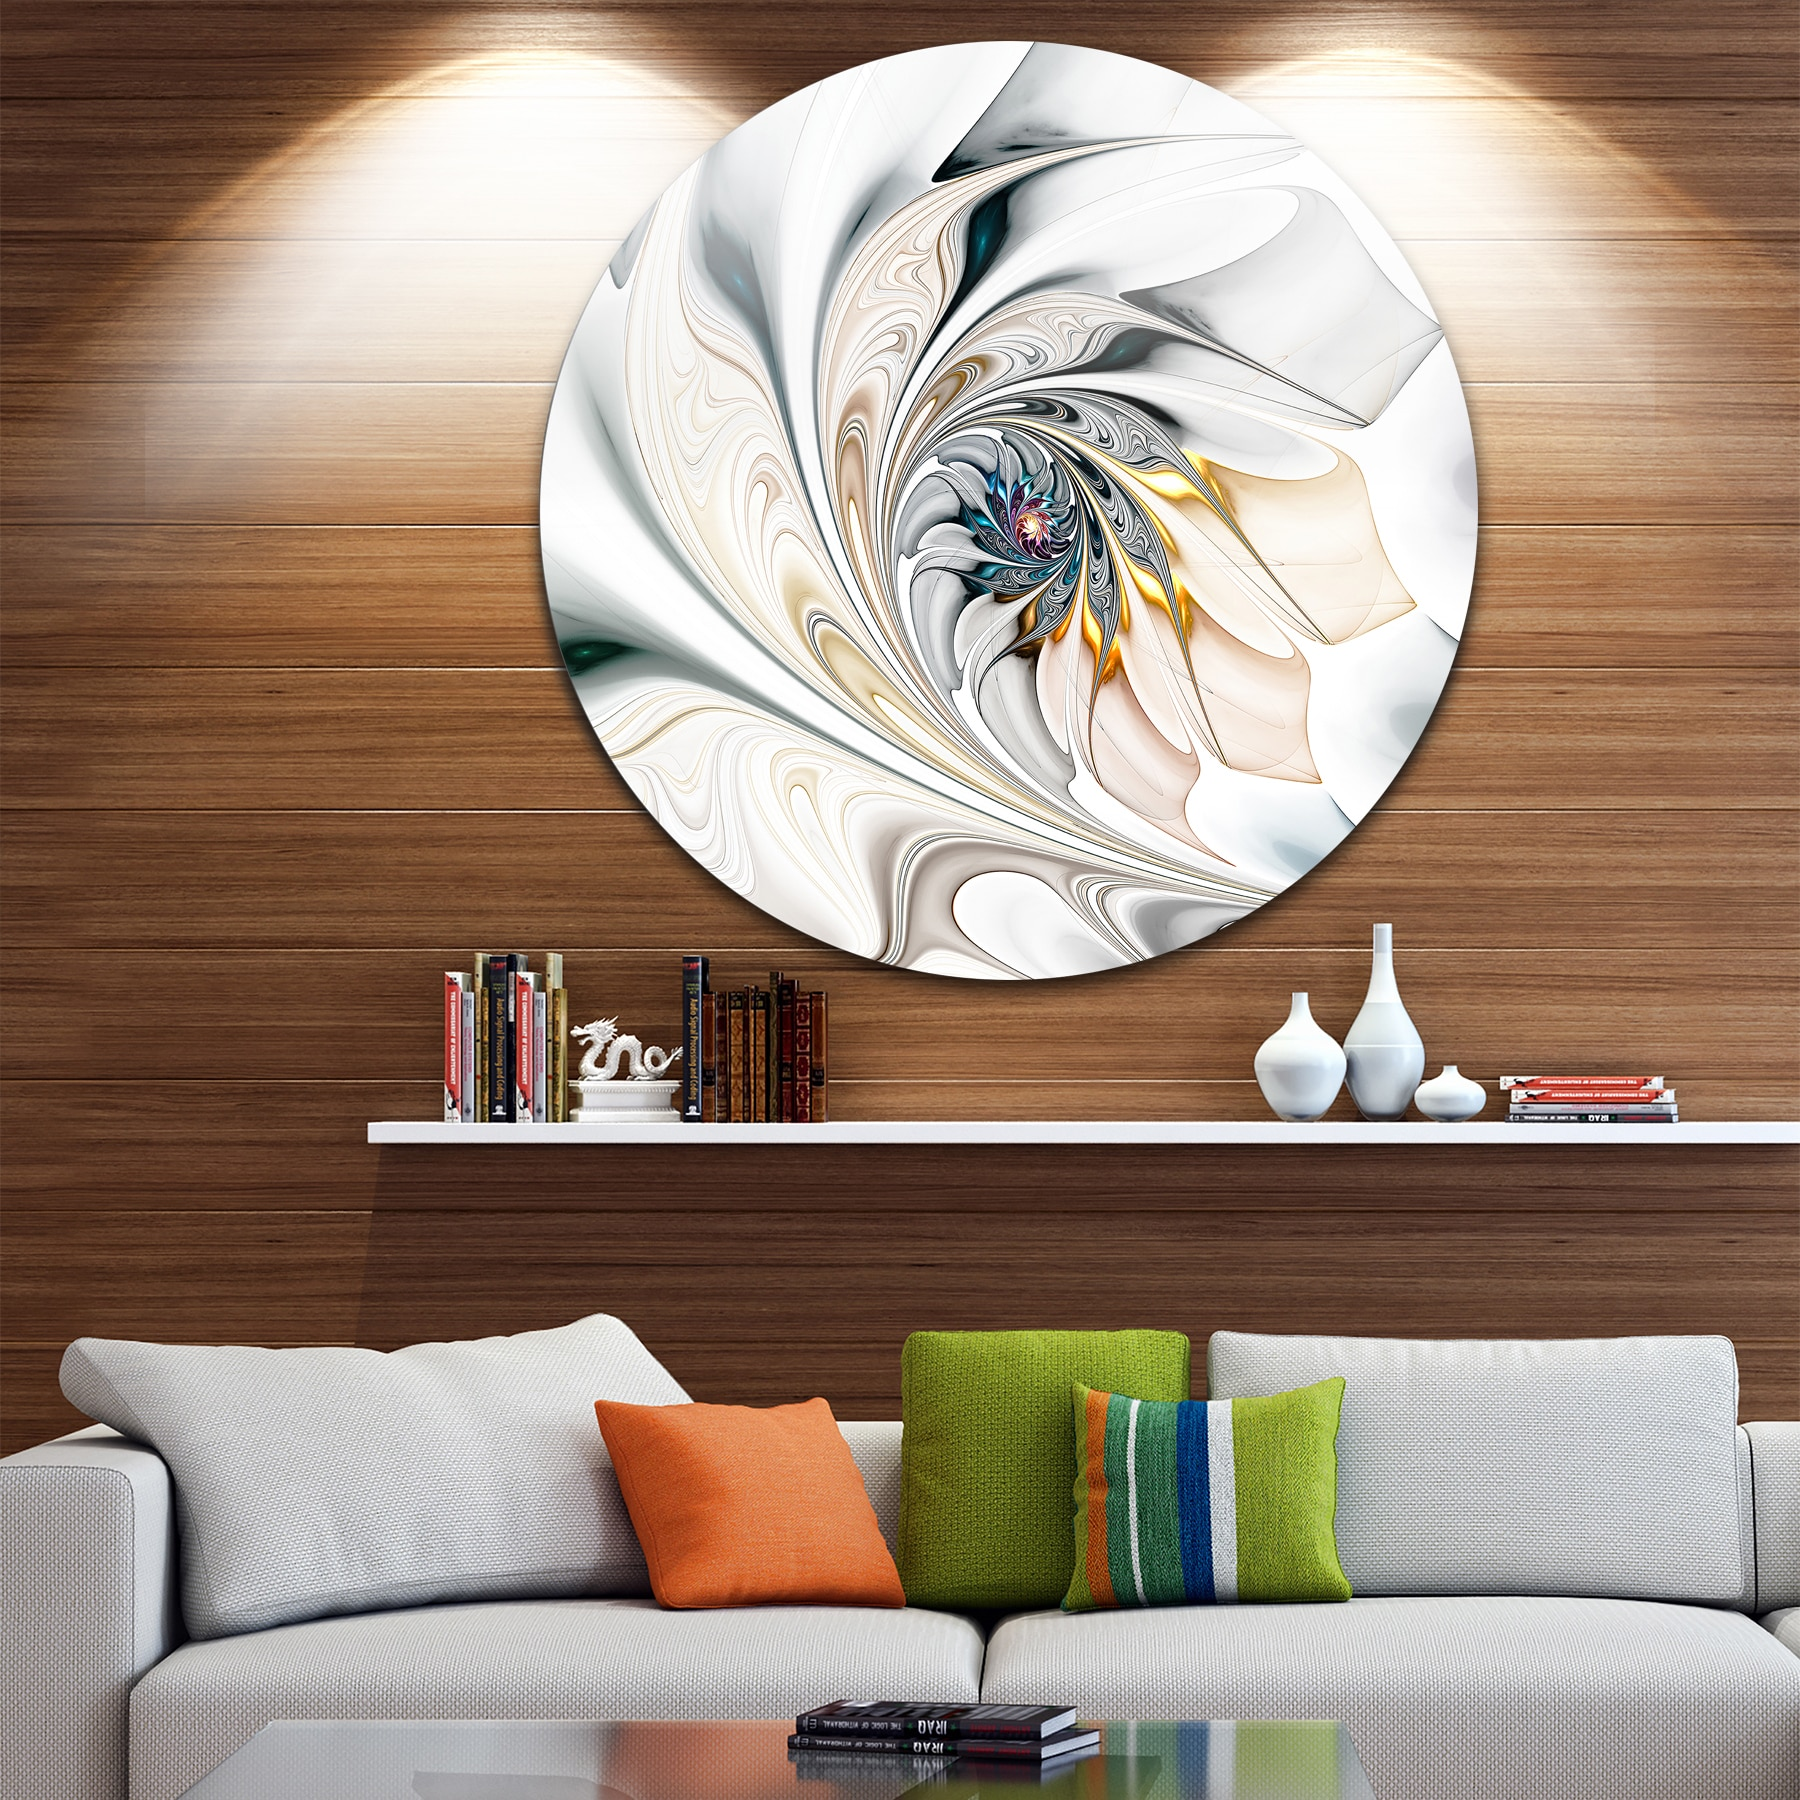 Designart 'White Stained Glass Floral Art' Floral Circle Metal Wall Art -  Free Shipping Today - Overstock.com - 20840661